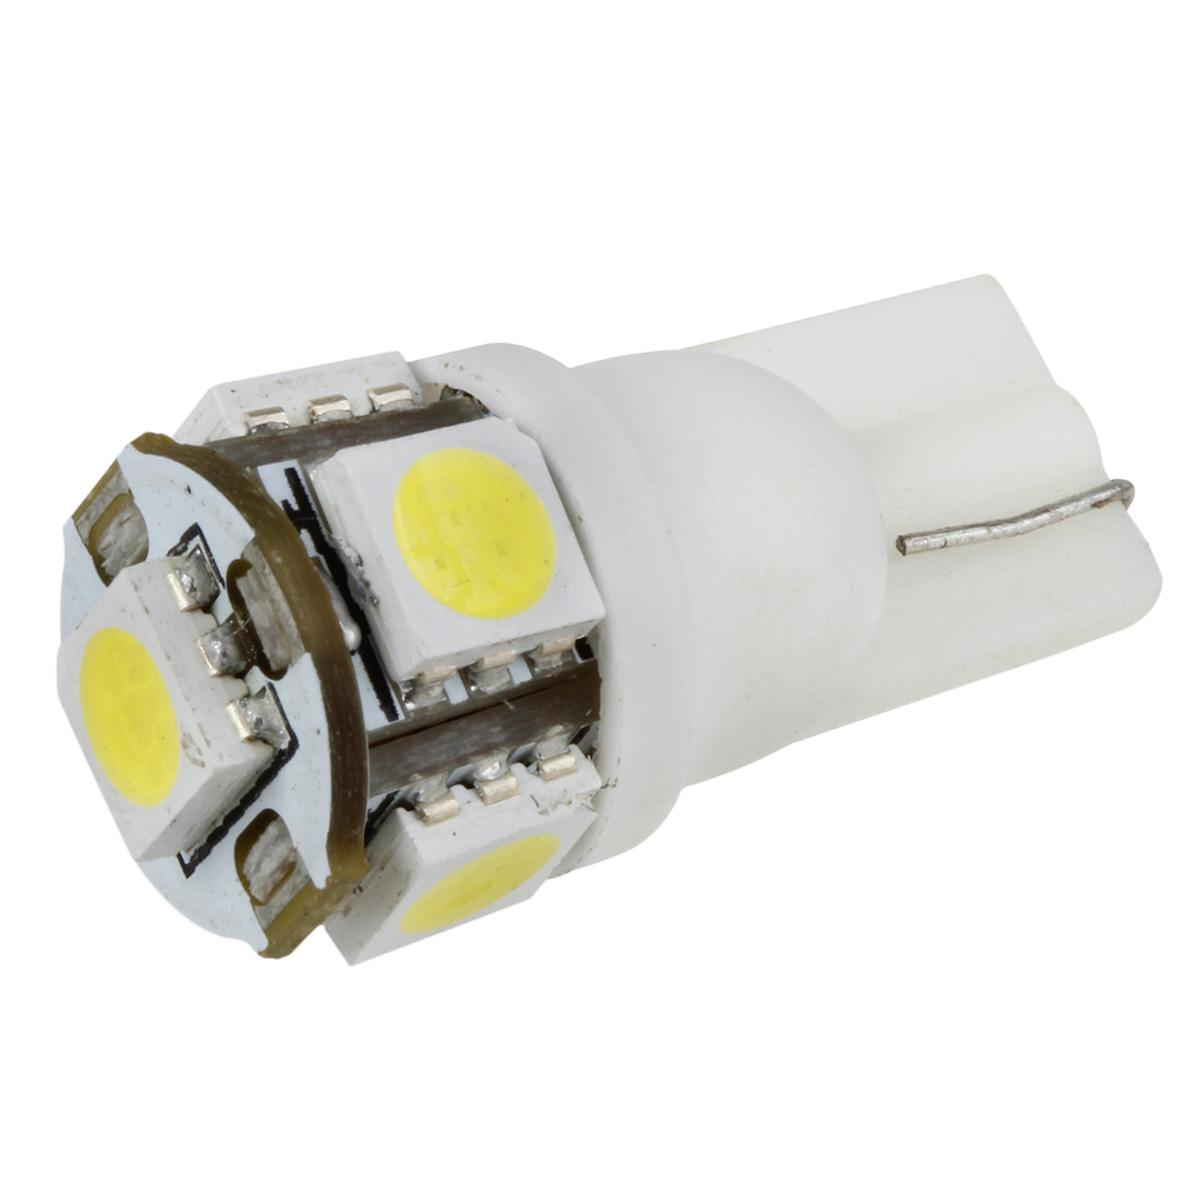 2PCS 168 194 2825 HID White 5 SMD 5050 LED Bulbs For